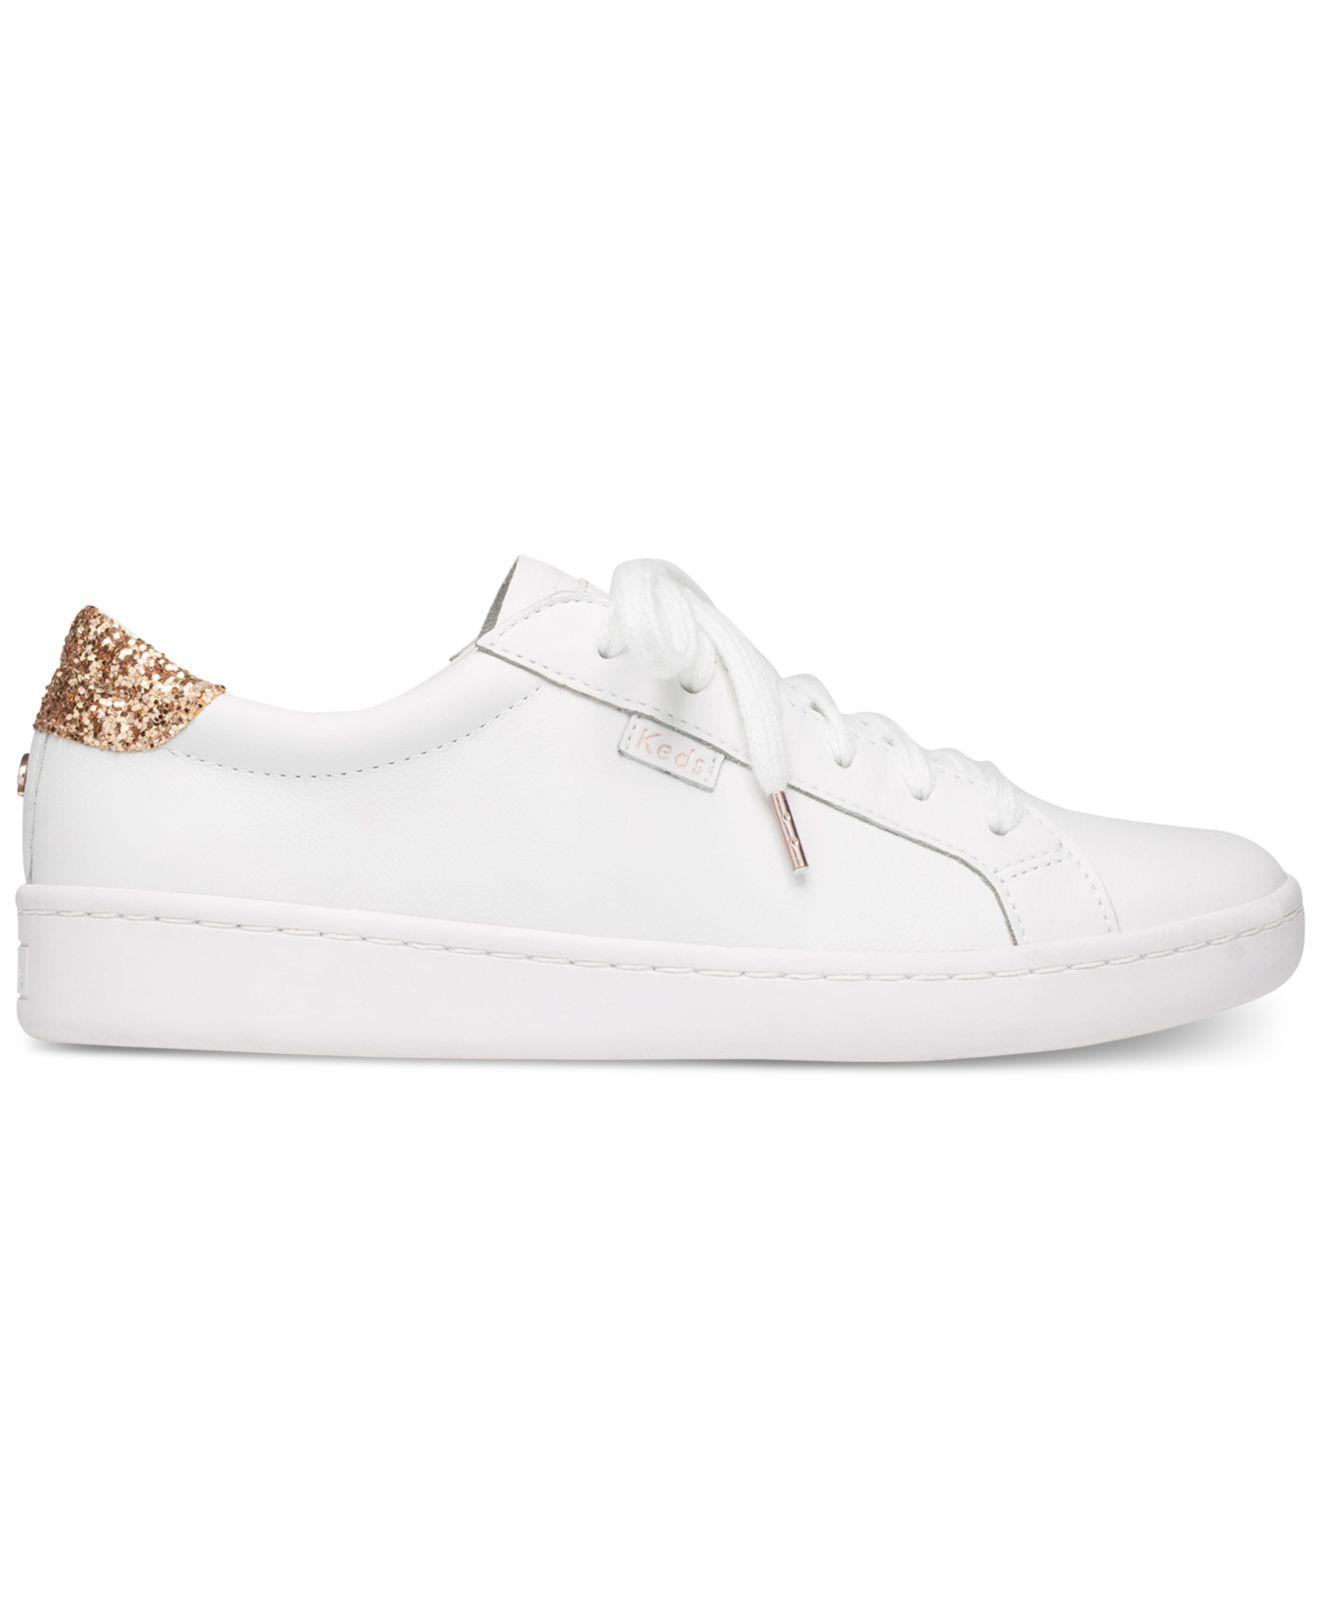 a5e6d48a04 Lyst - Kate Spade Keds X New York Leather And Glitter Sneakers in White